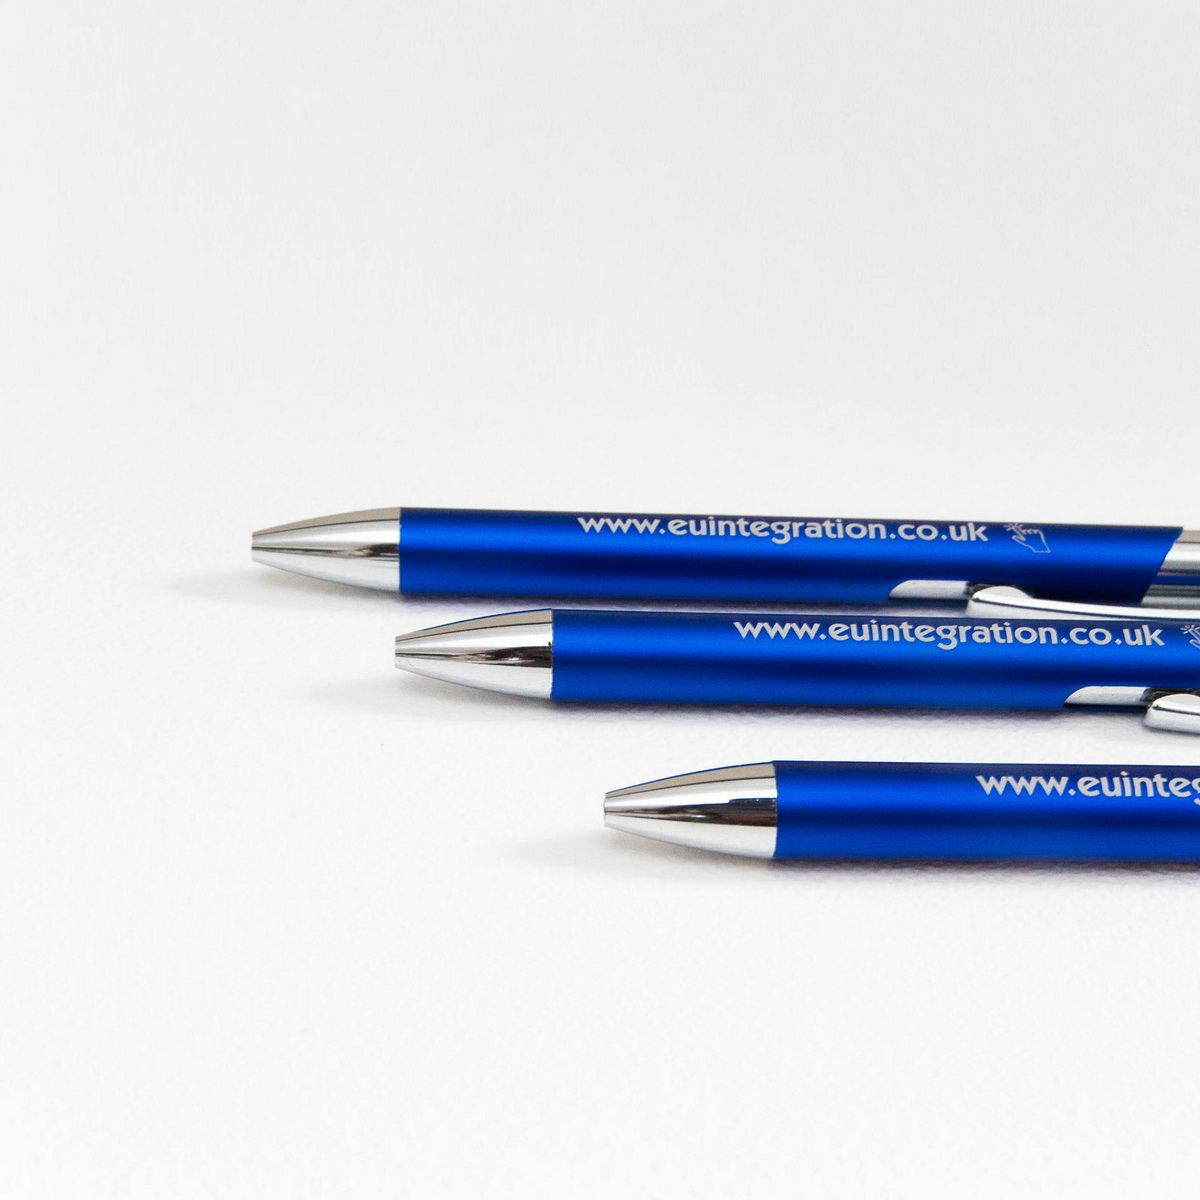 Custom-Printed-Ballpens-Engraved-Southampton-UK-Promotional-Pens-Keyrings-Notepads-0015